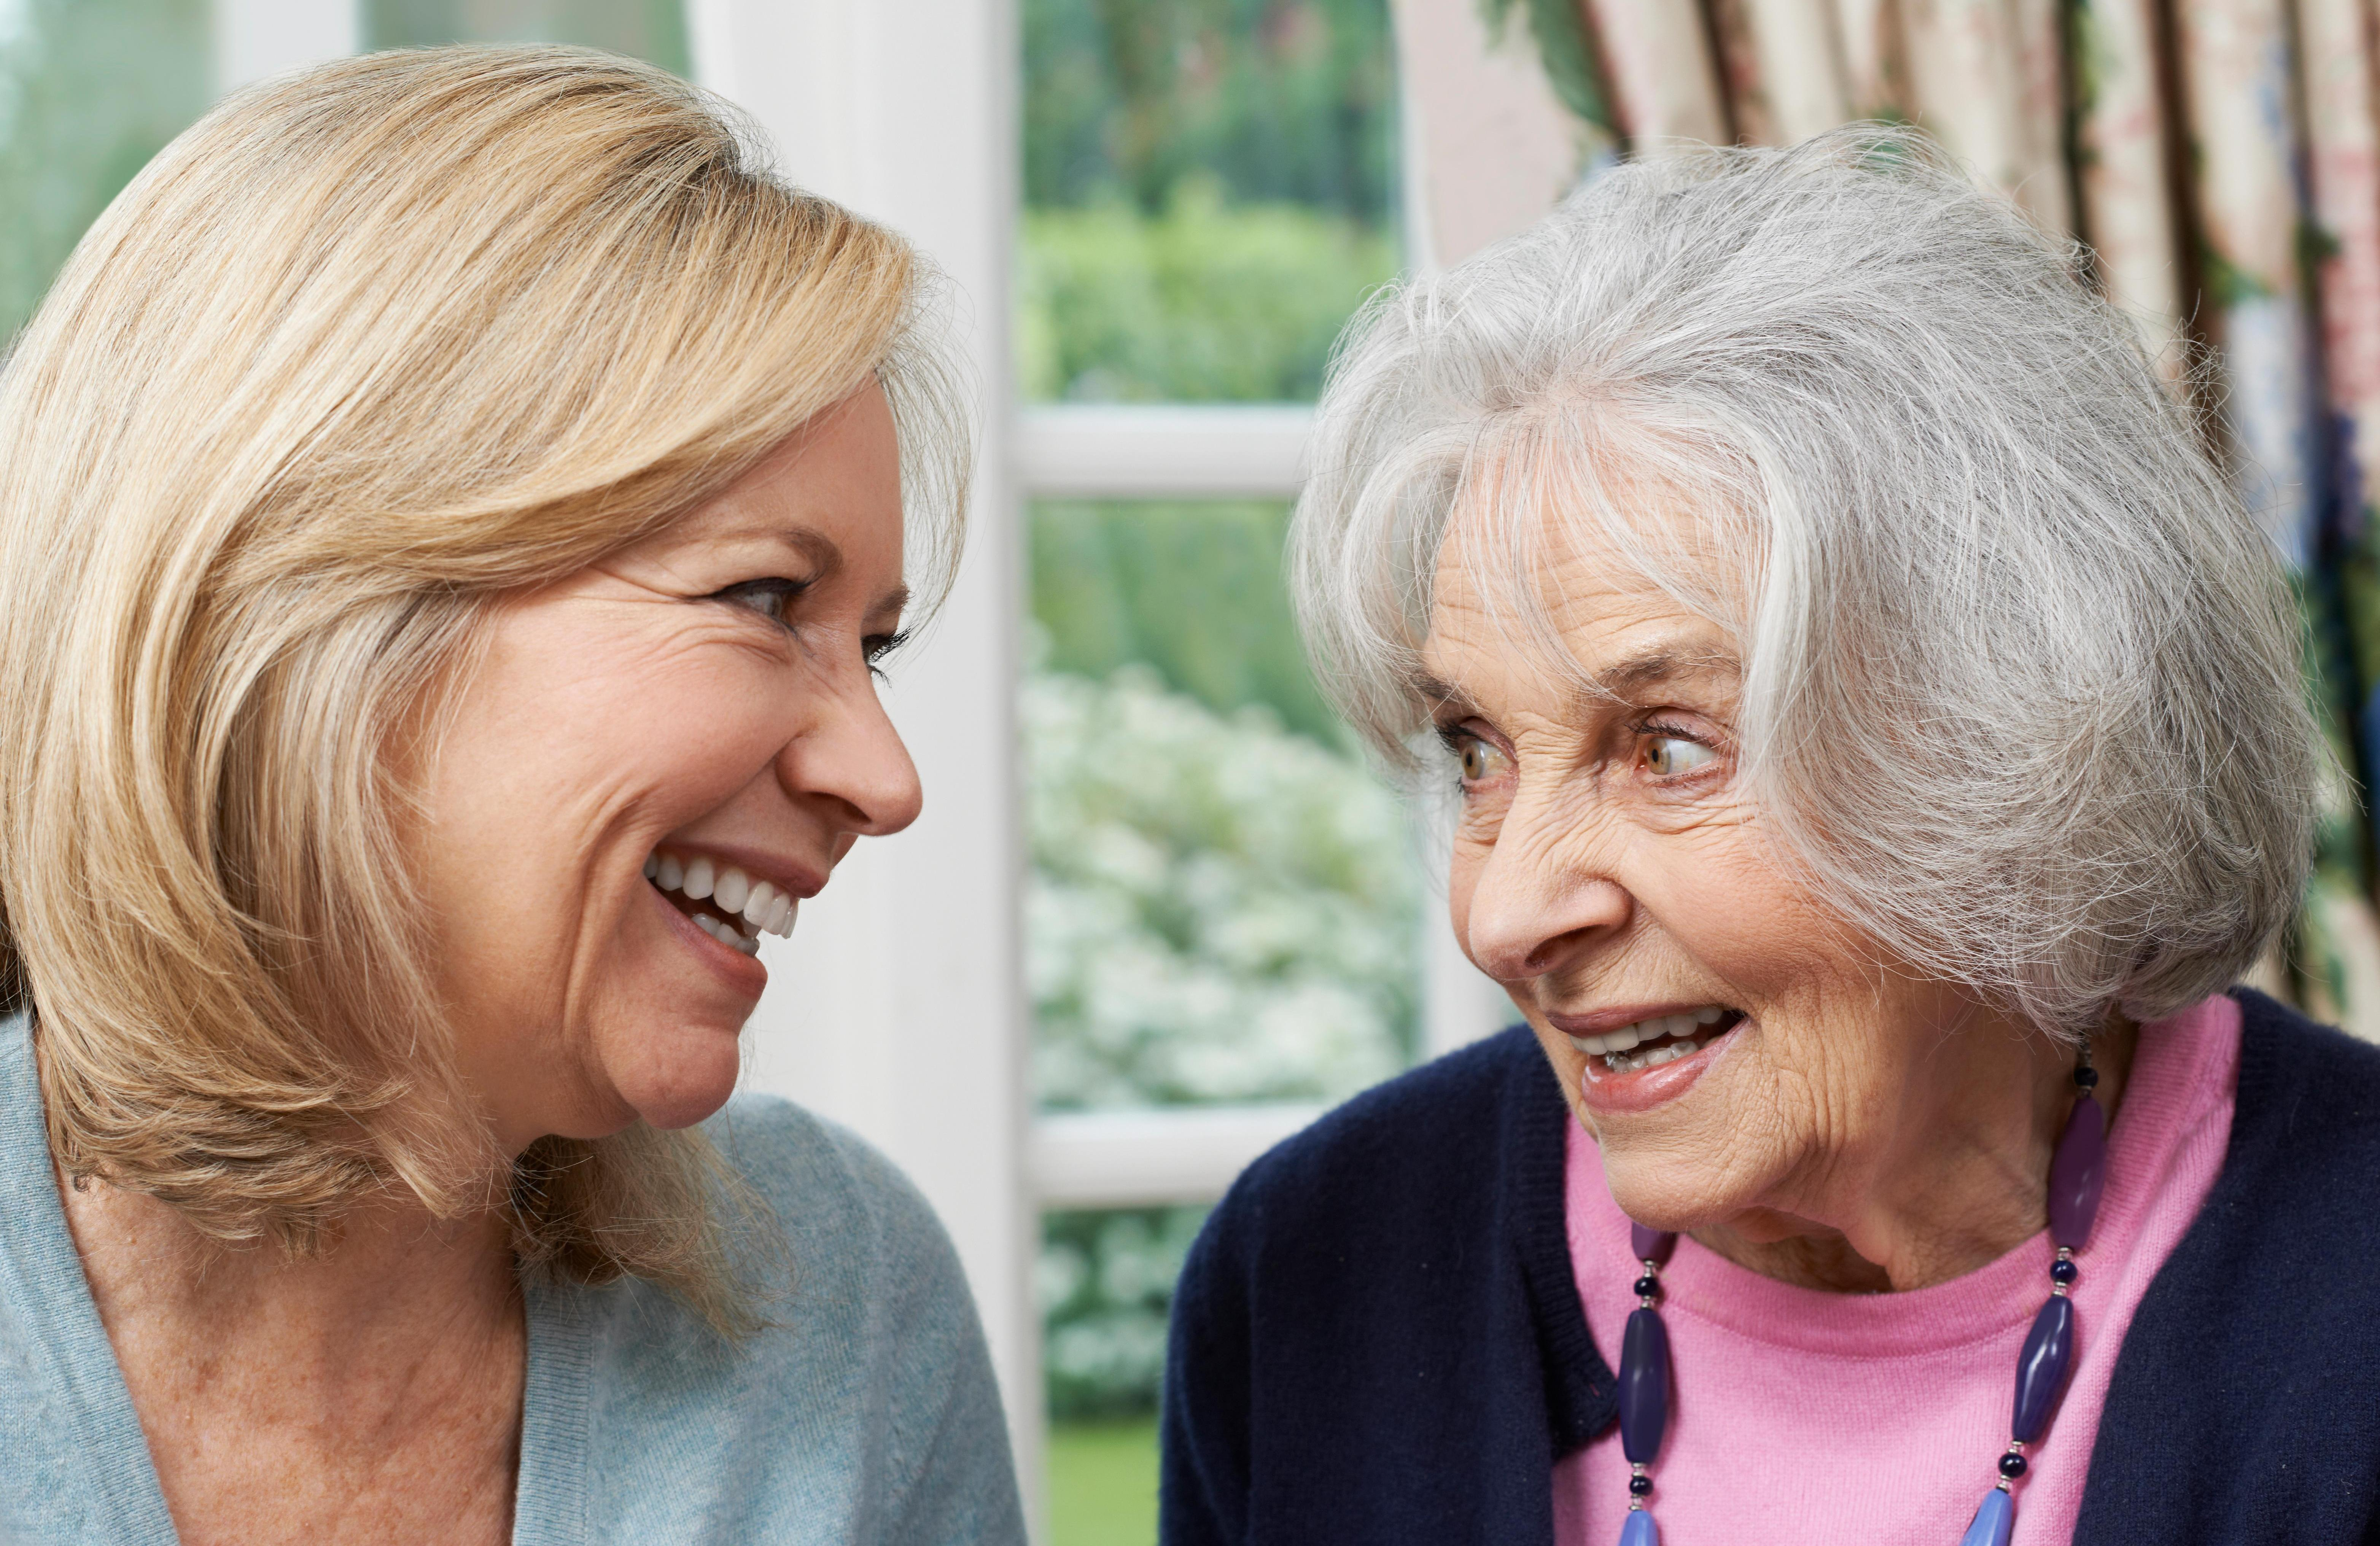 Carer comforting an elderly client suffering with Alzheimer's